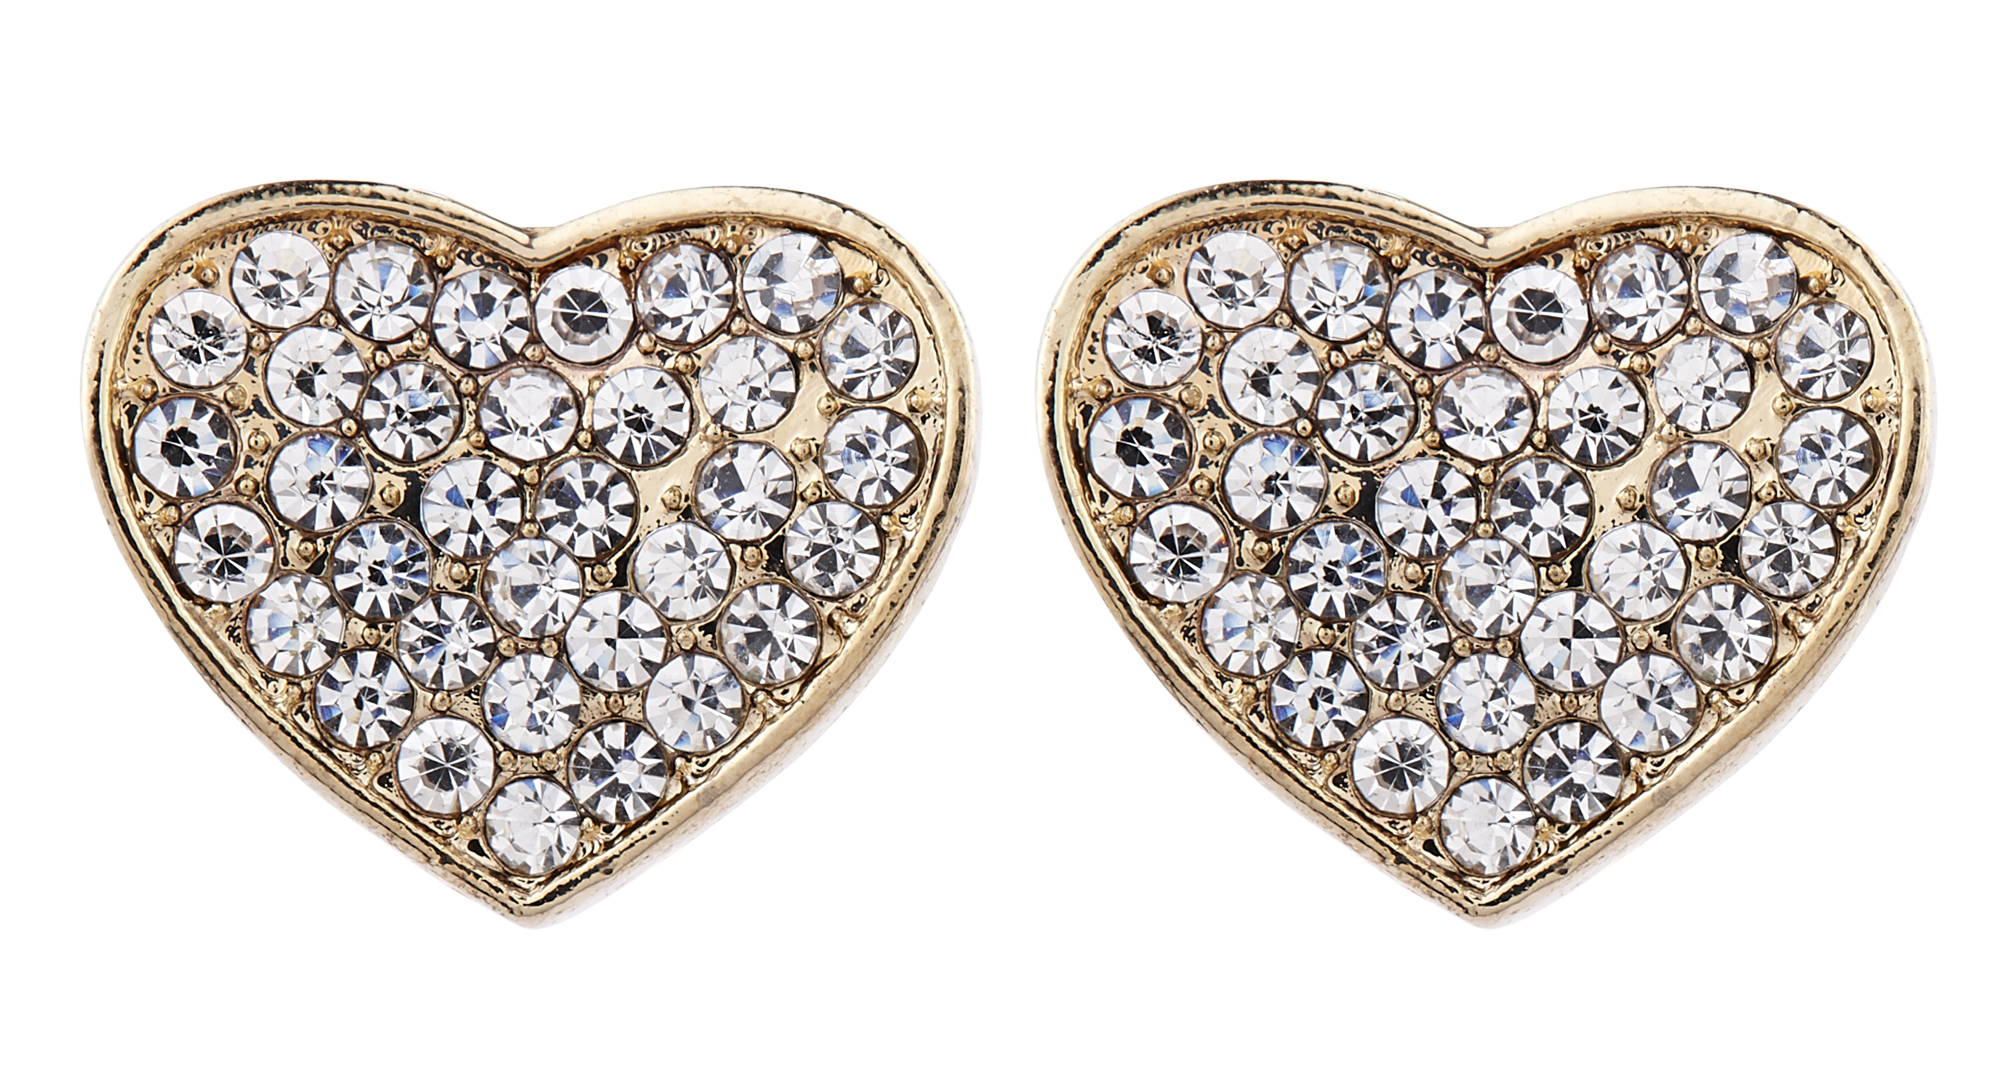 Clip On Earrings - Whitney - gold heart stud earring with crystals